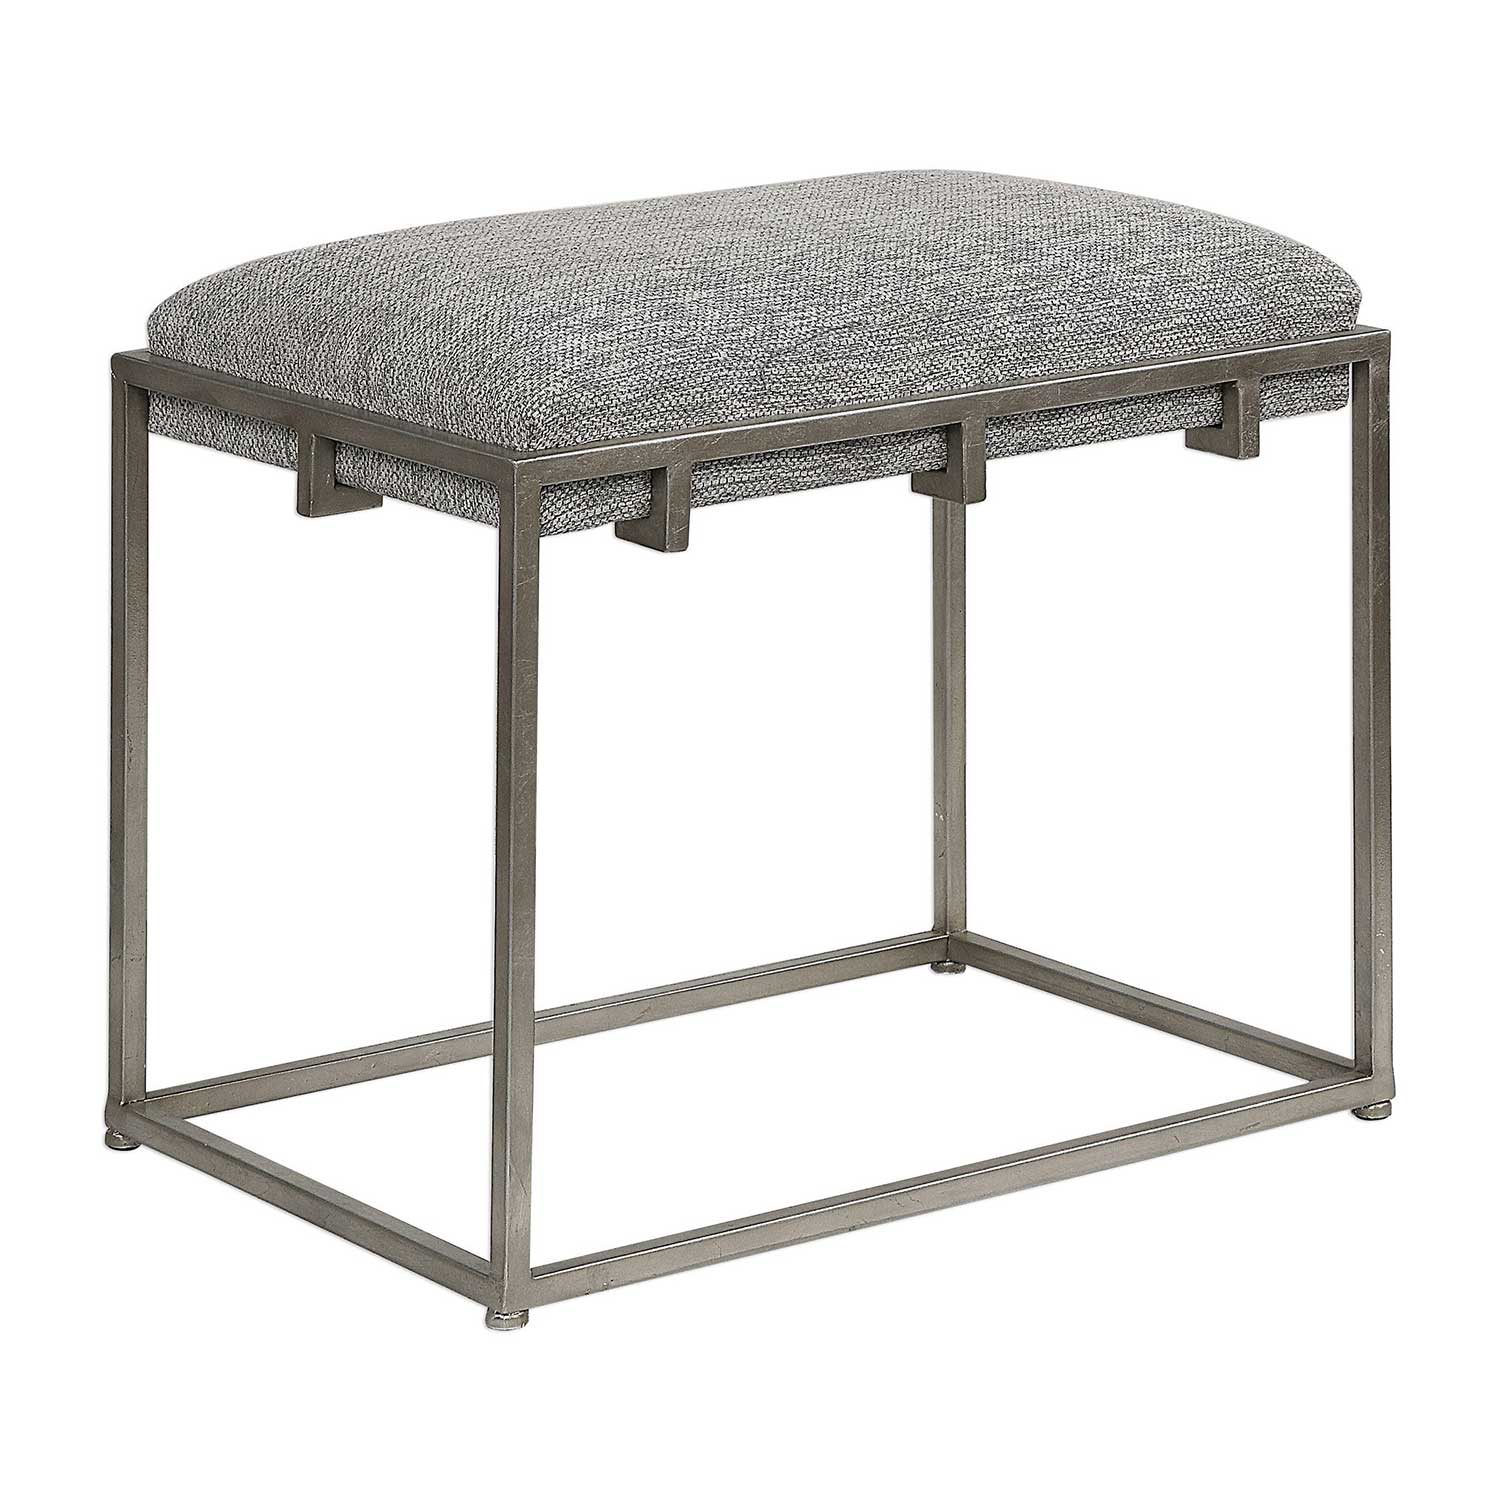 Uttermost Edie Small Bench - Silver